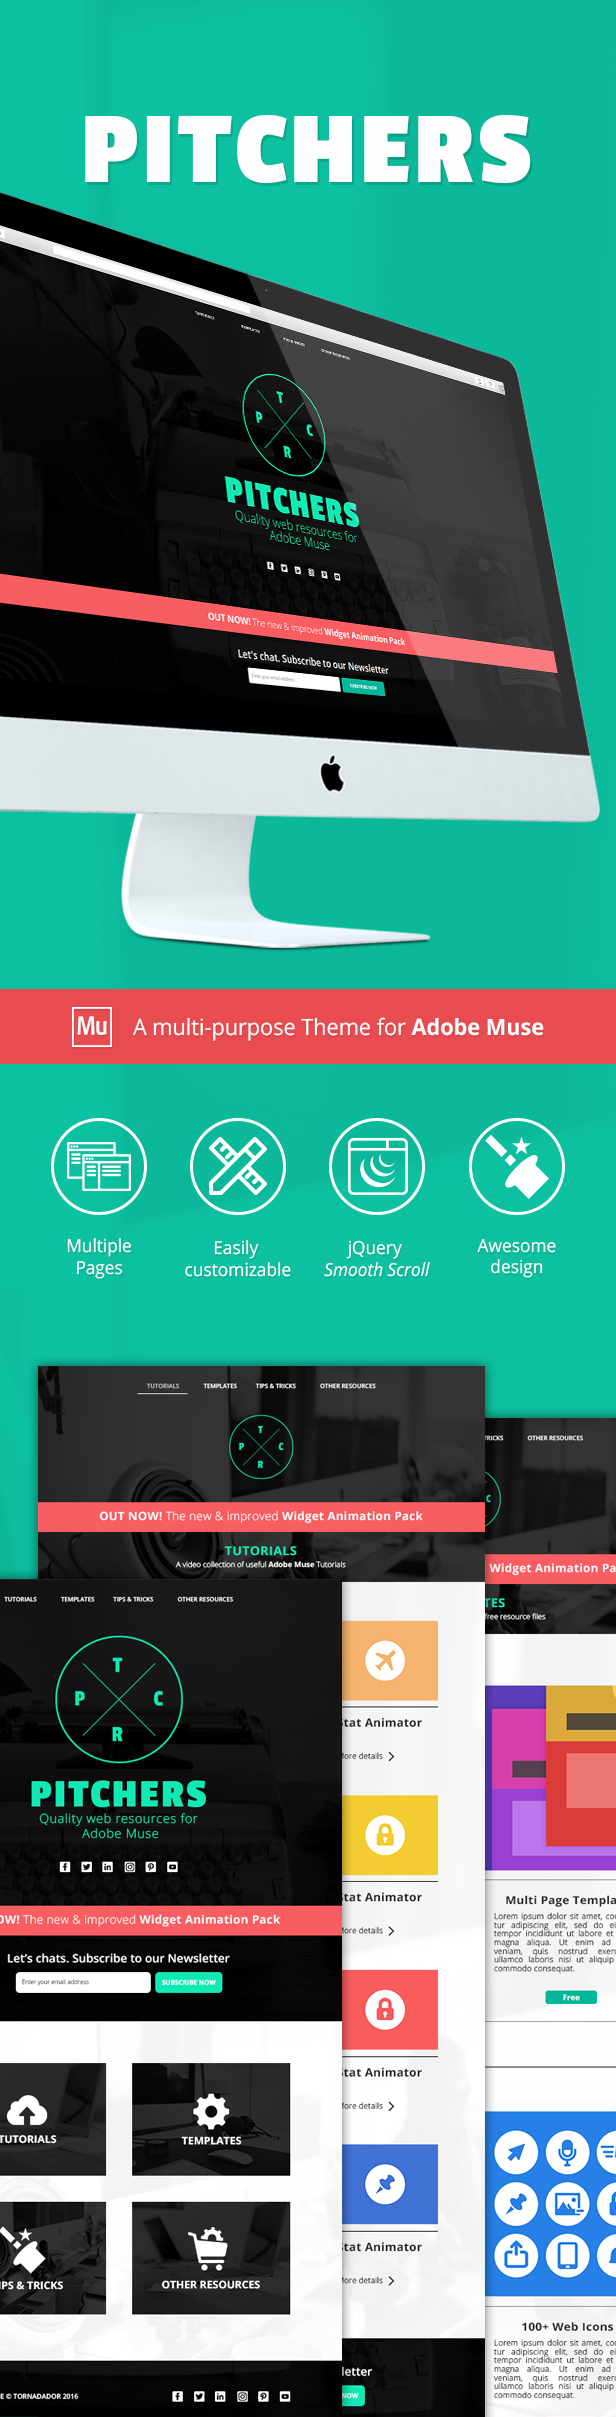 Pitchers | A Multi-Purpose Adobe Muse Template - 1